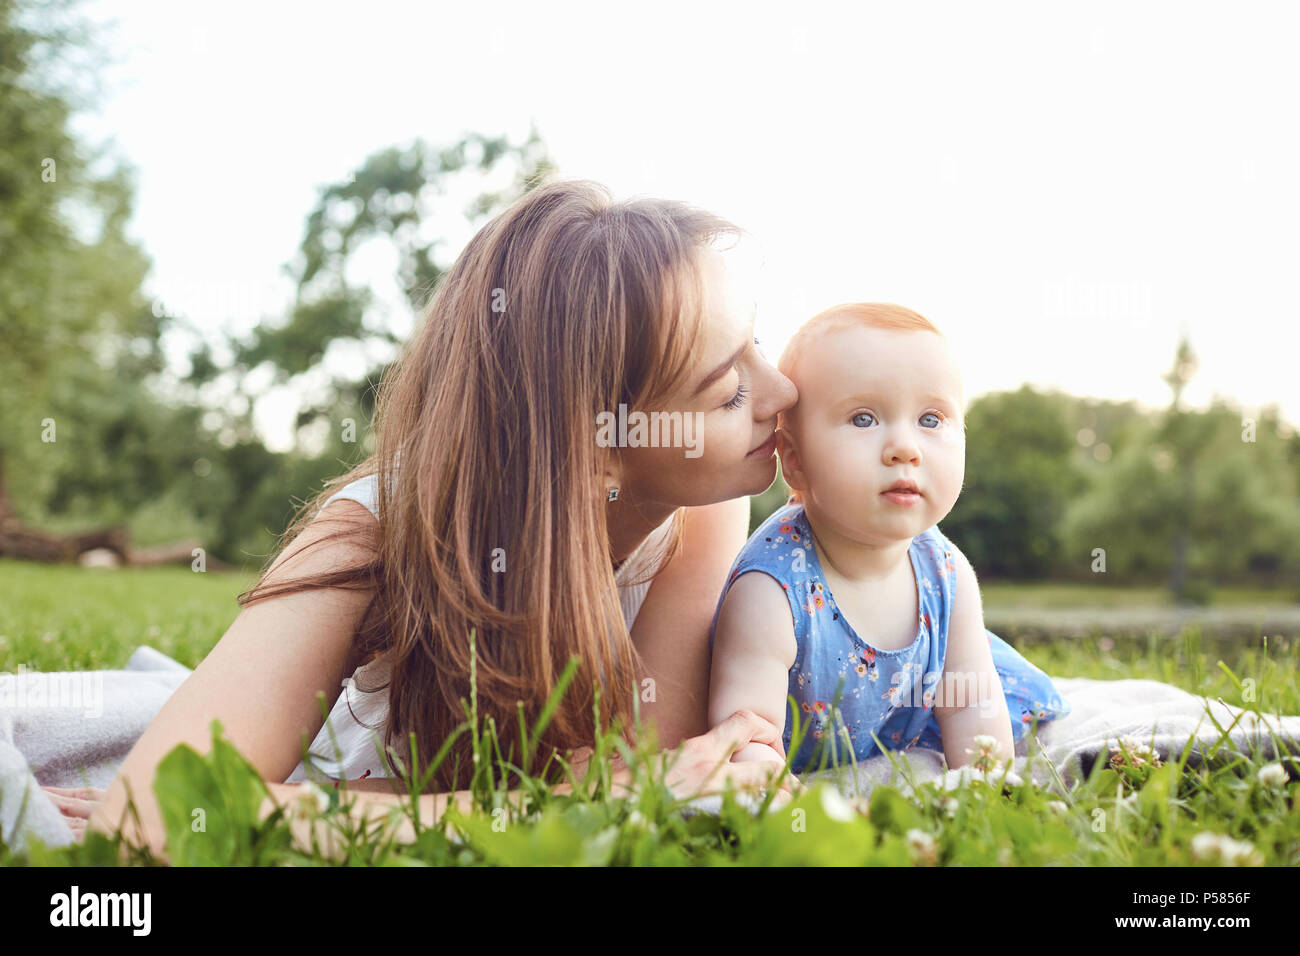 Mother and baby playing on grass in summer park - Stock Image